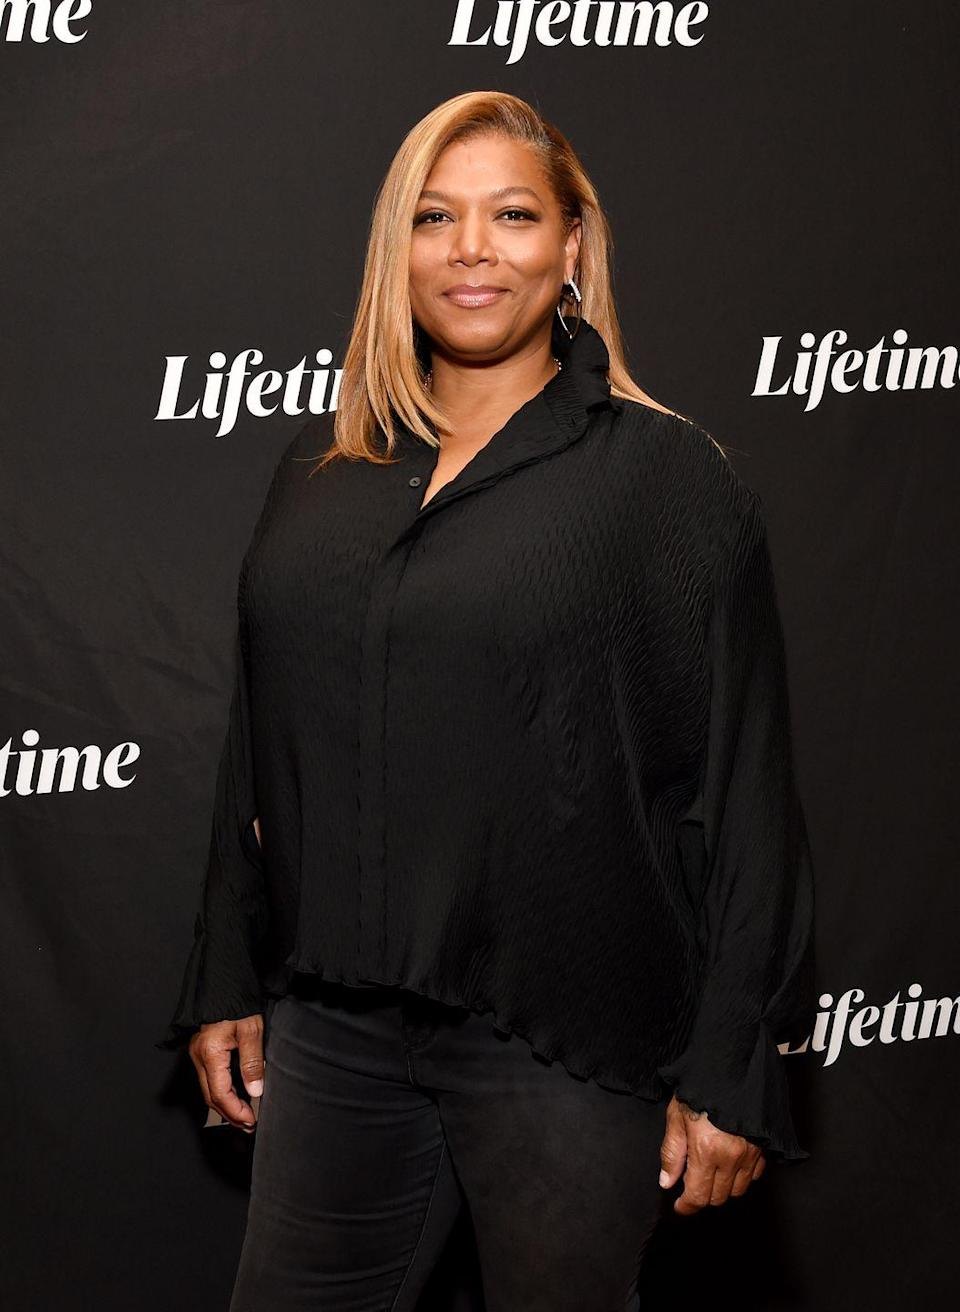 <p>The queen of gorgeous hair rocks this classic caramel-toned look with gold streaks. This season, give yourself permission to ditch the darker hues and lean into fall hair colors that warm up your complexion, like actress and singer<strong> Queen Latifah</strong>.</p>